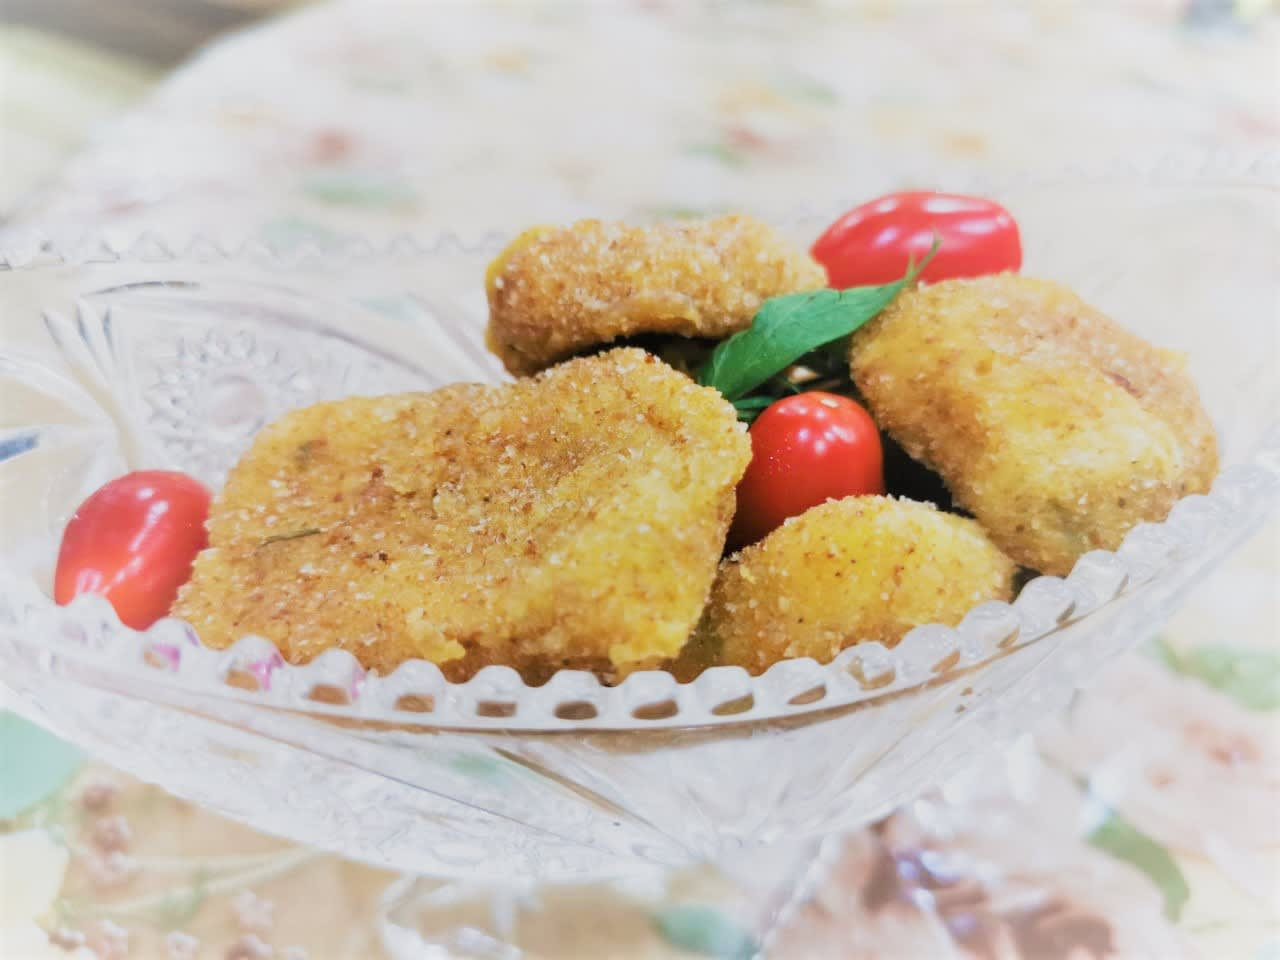 Send Detailed Video Of Chili Cheese Nuggets Recipe From Most Popular Restaurant By Faithmane